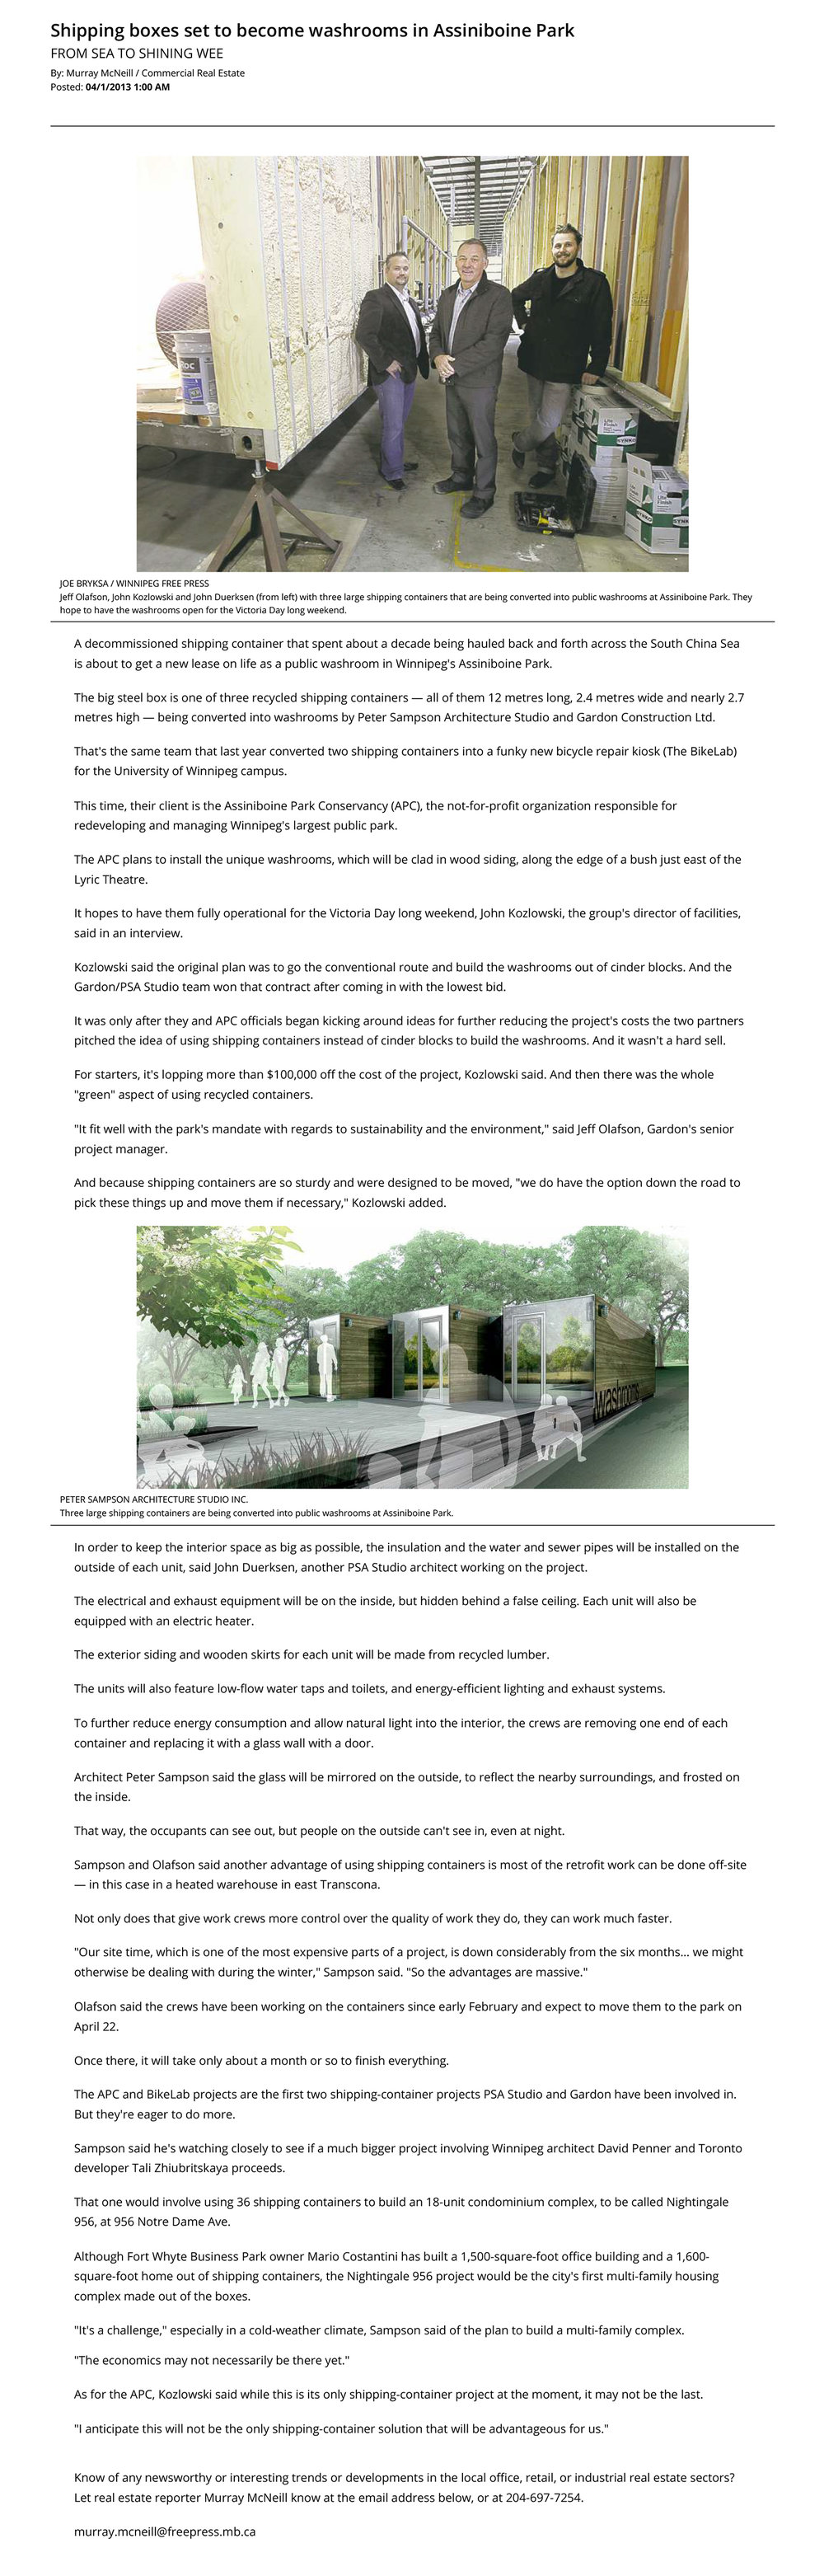 Shipping boxes set to become washrooms in Assiniboine Park - Winnipeg Free Press-1.jpg